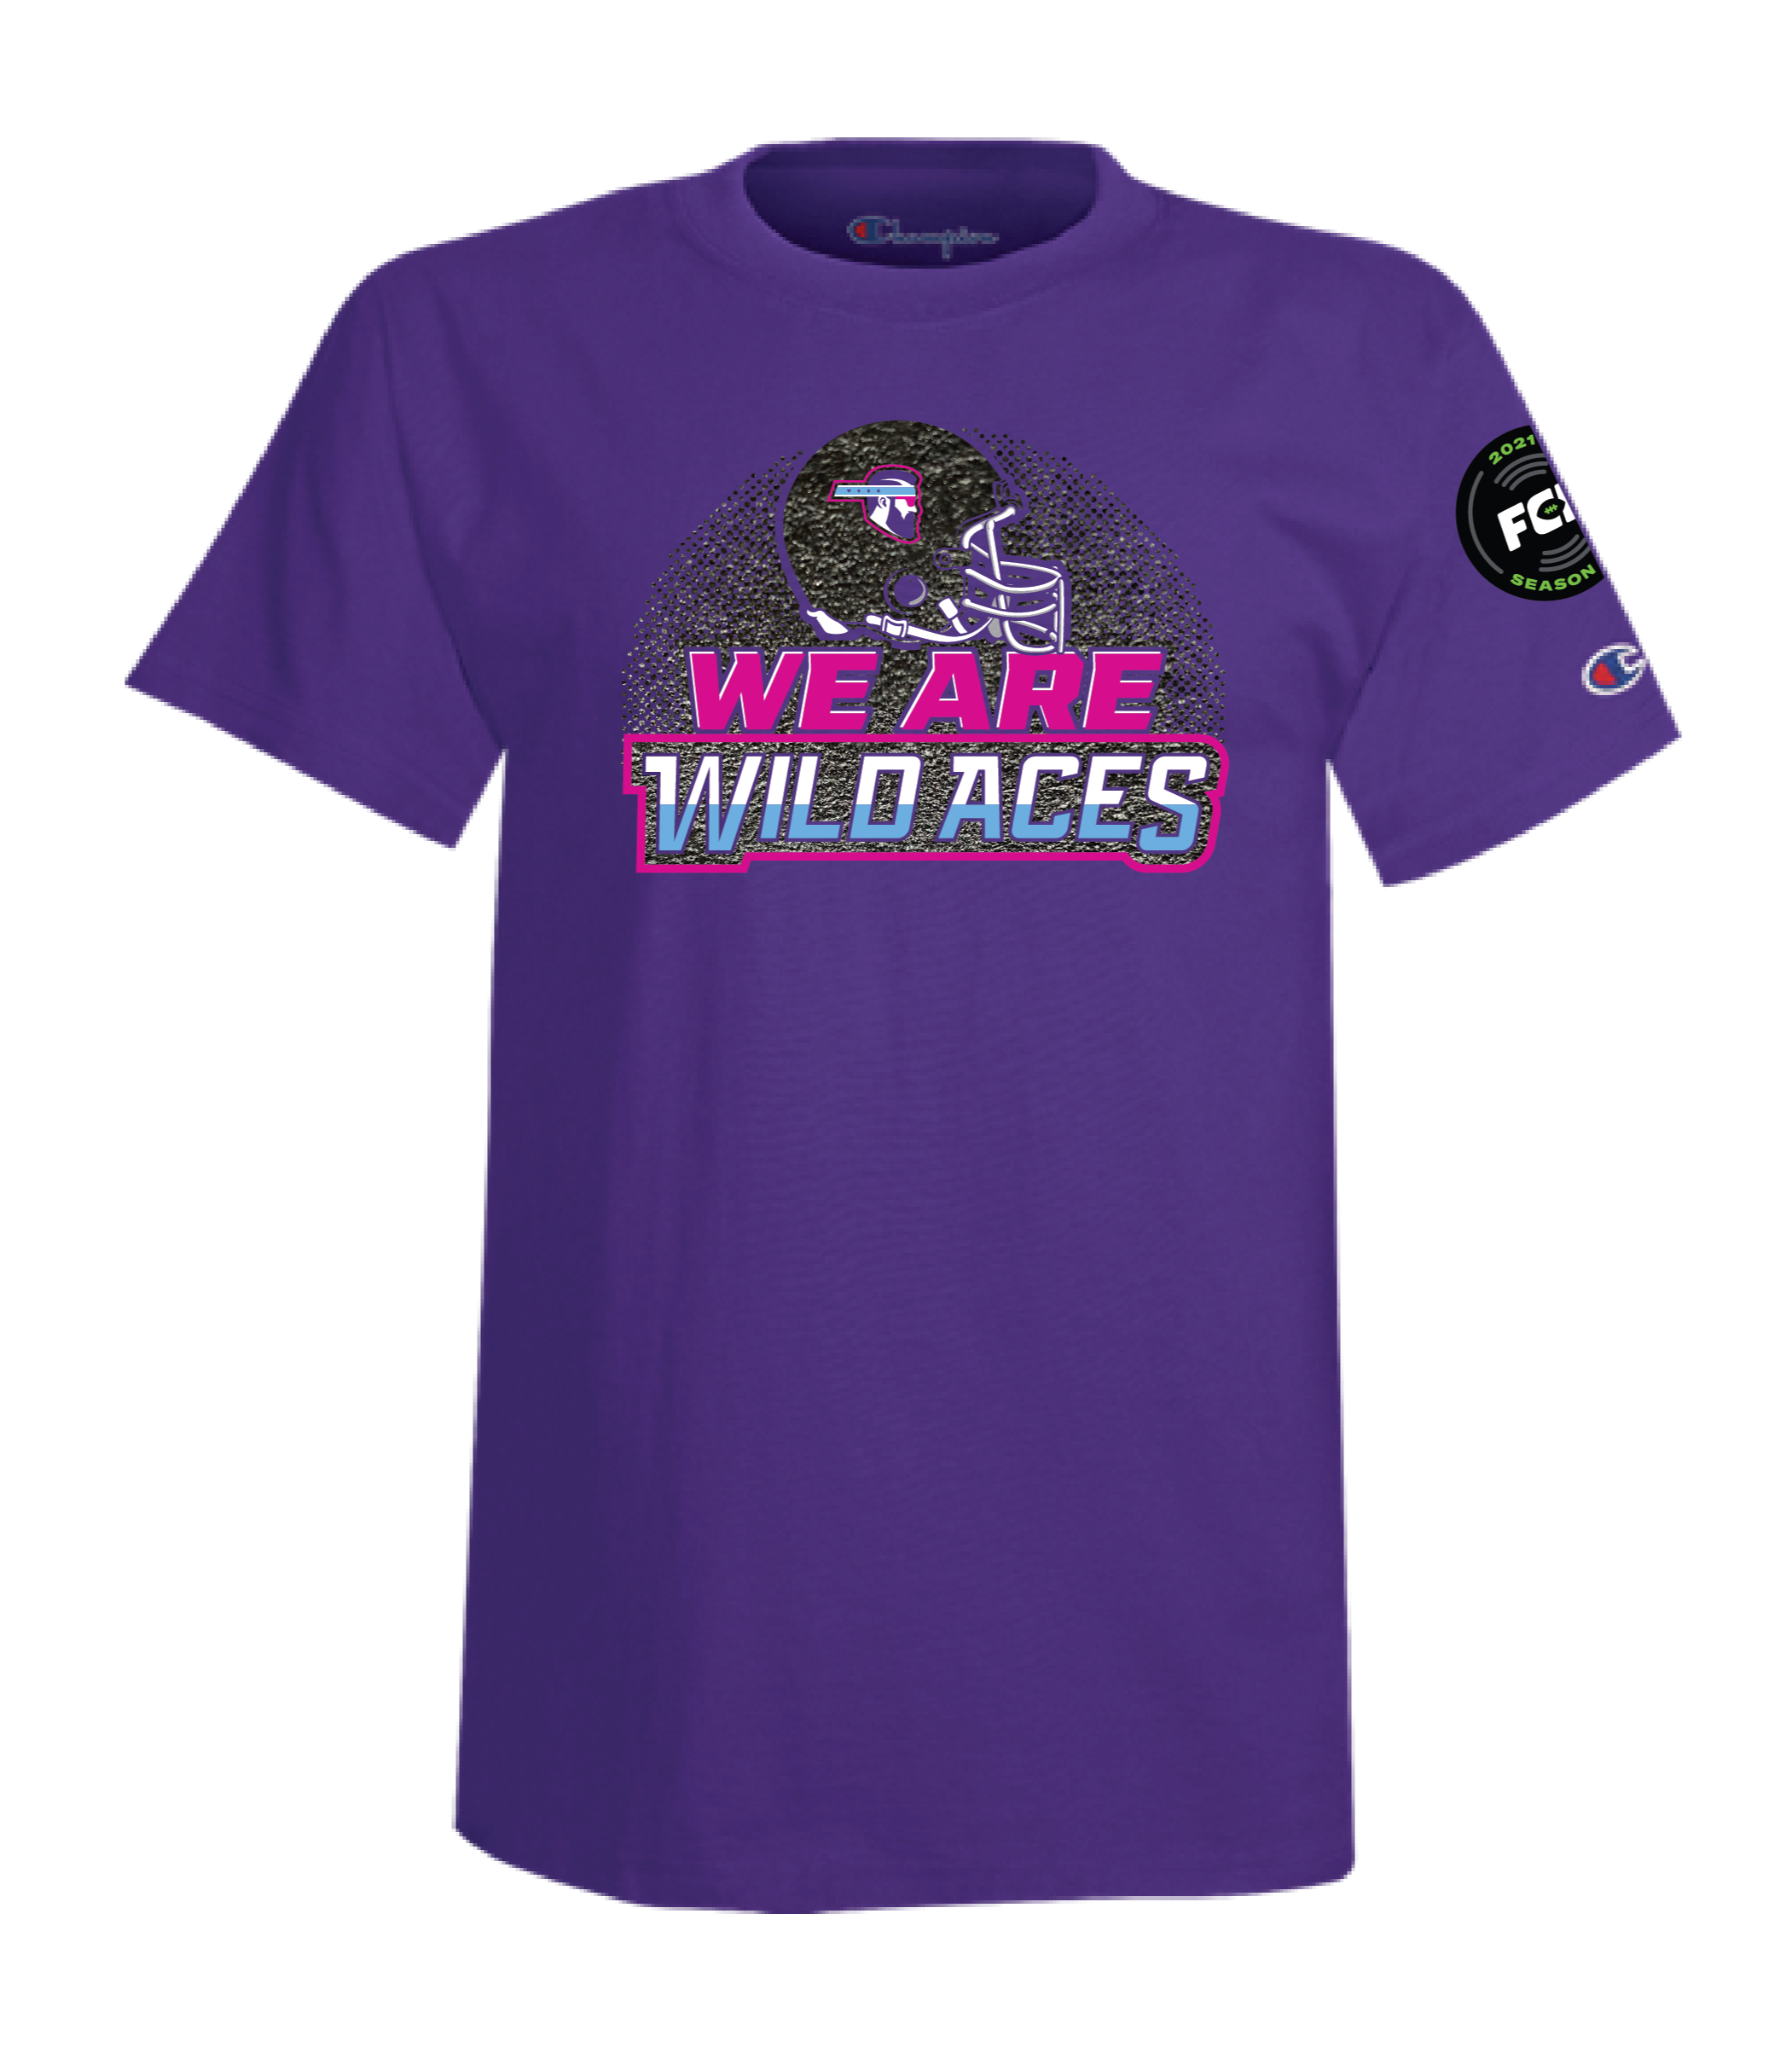 Wild Aces X Champion Collection Tee product image (1)